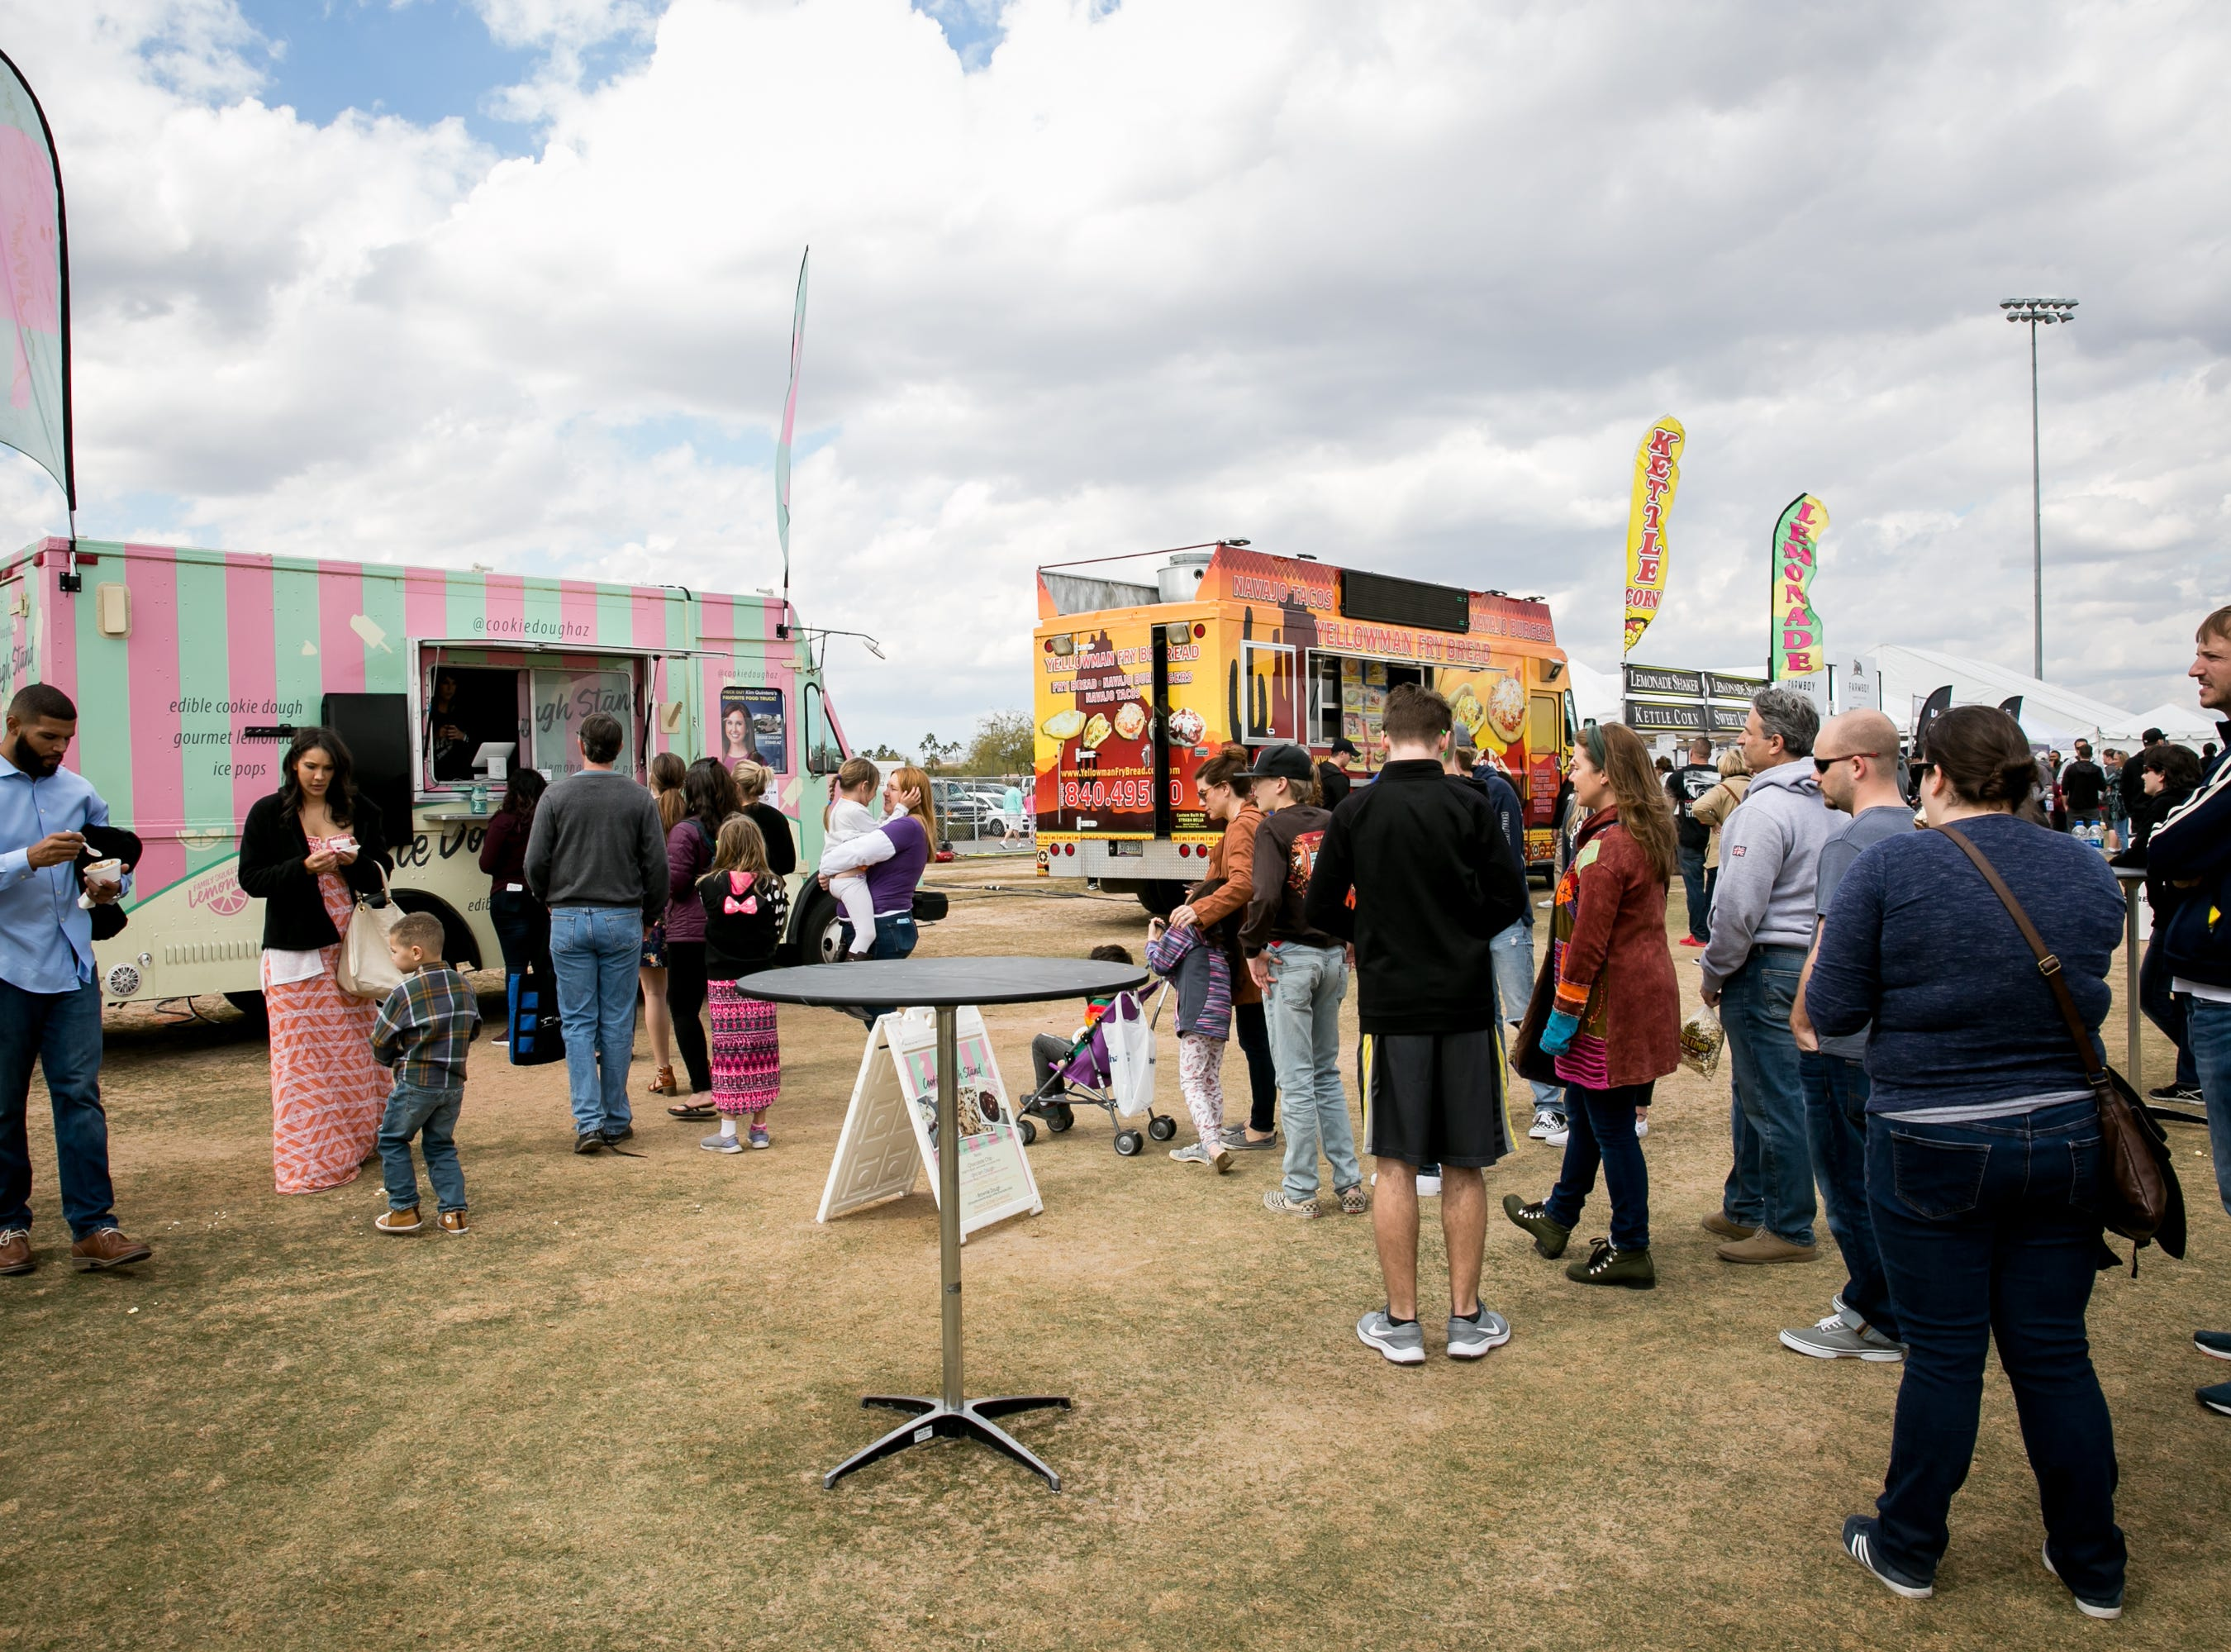 There were dozens of food trucks to choose from during the Street Eats Food Truck Festival at Salt River Fields near Scottsdale on Feb. 17, 2019.